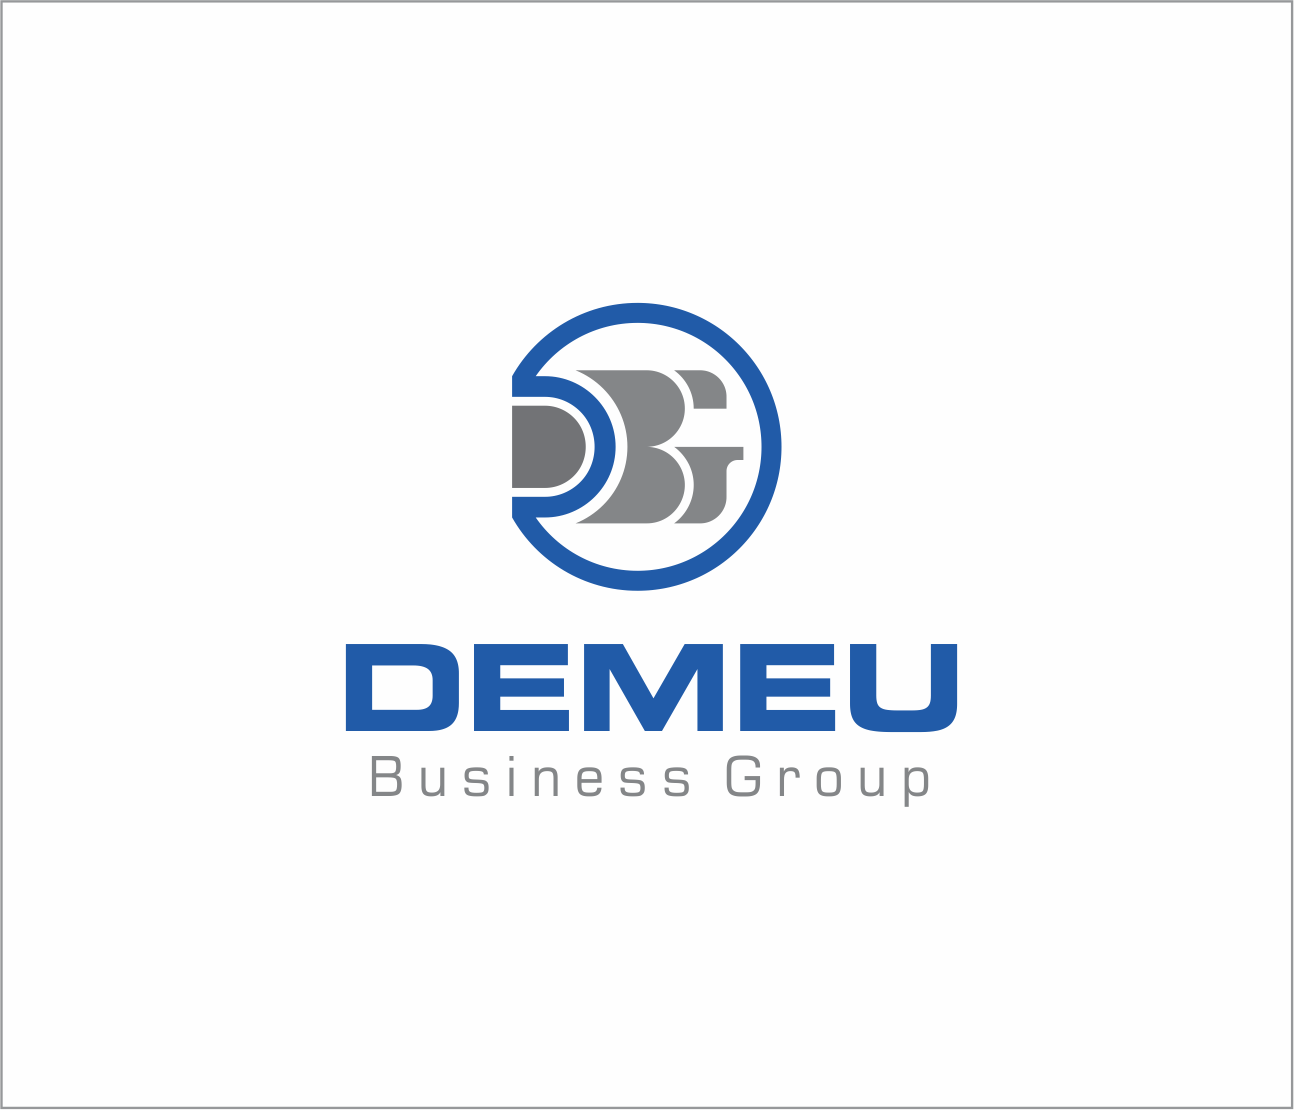 Logo Design by Armada Jamaluddin - Entry No. 145 in the Logo Design Contest Captivating Logo Design for DEMEU Business Group.